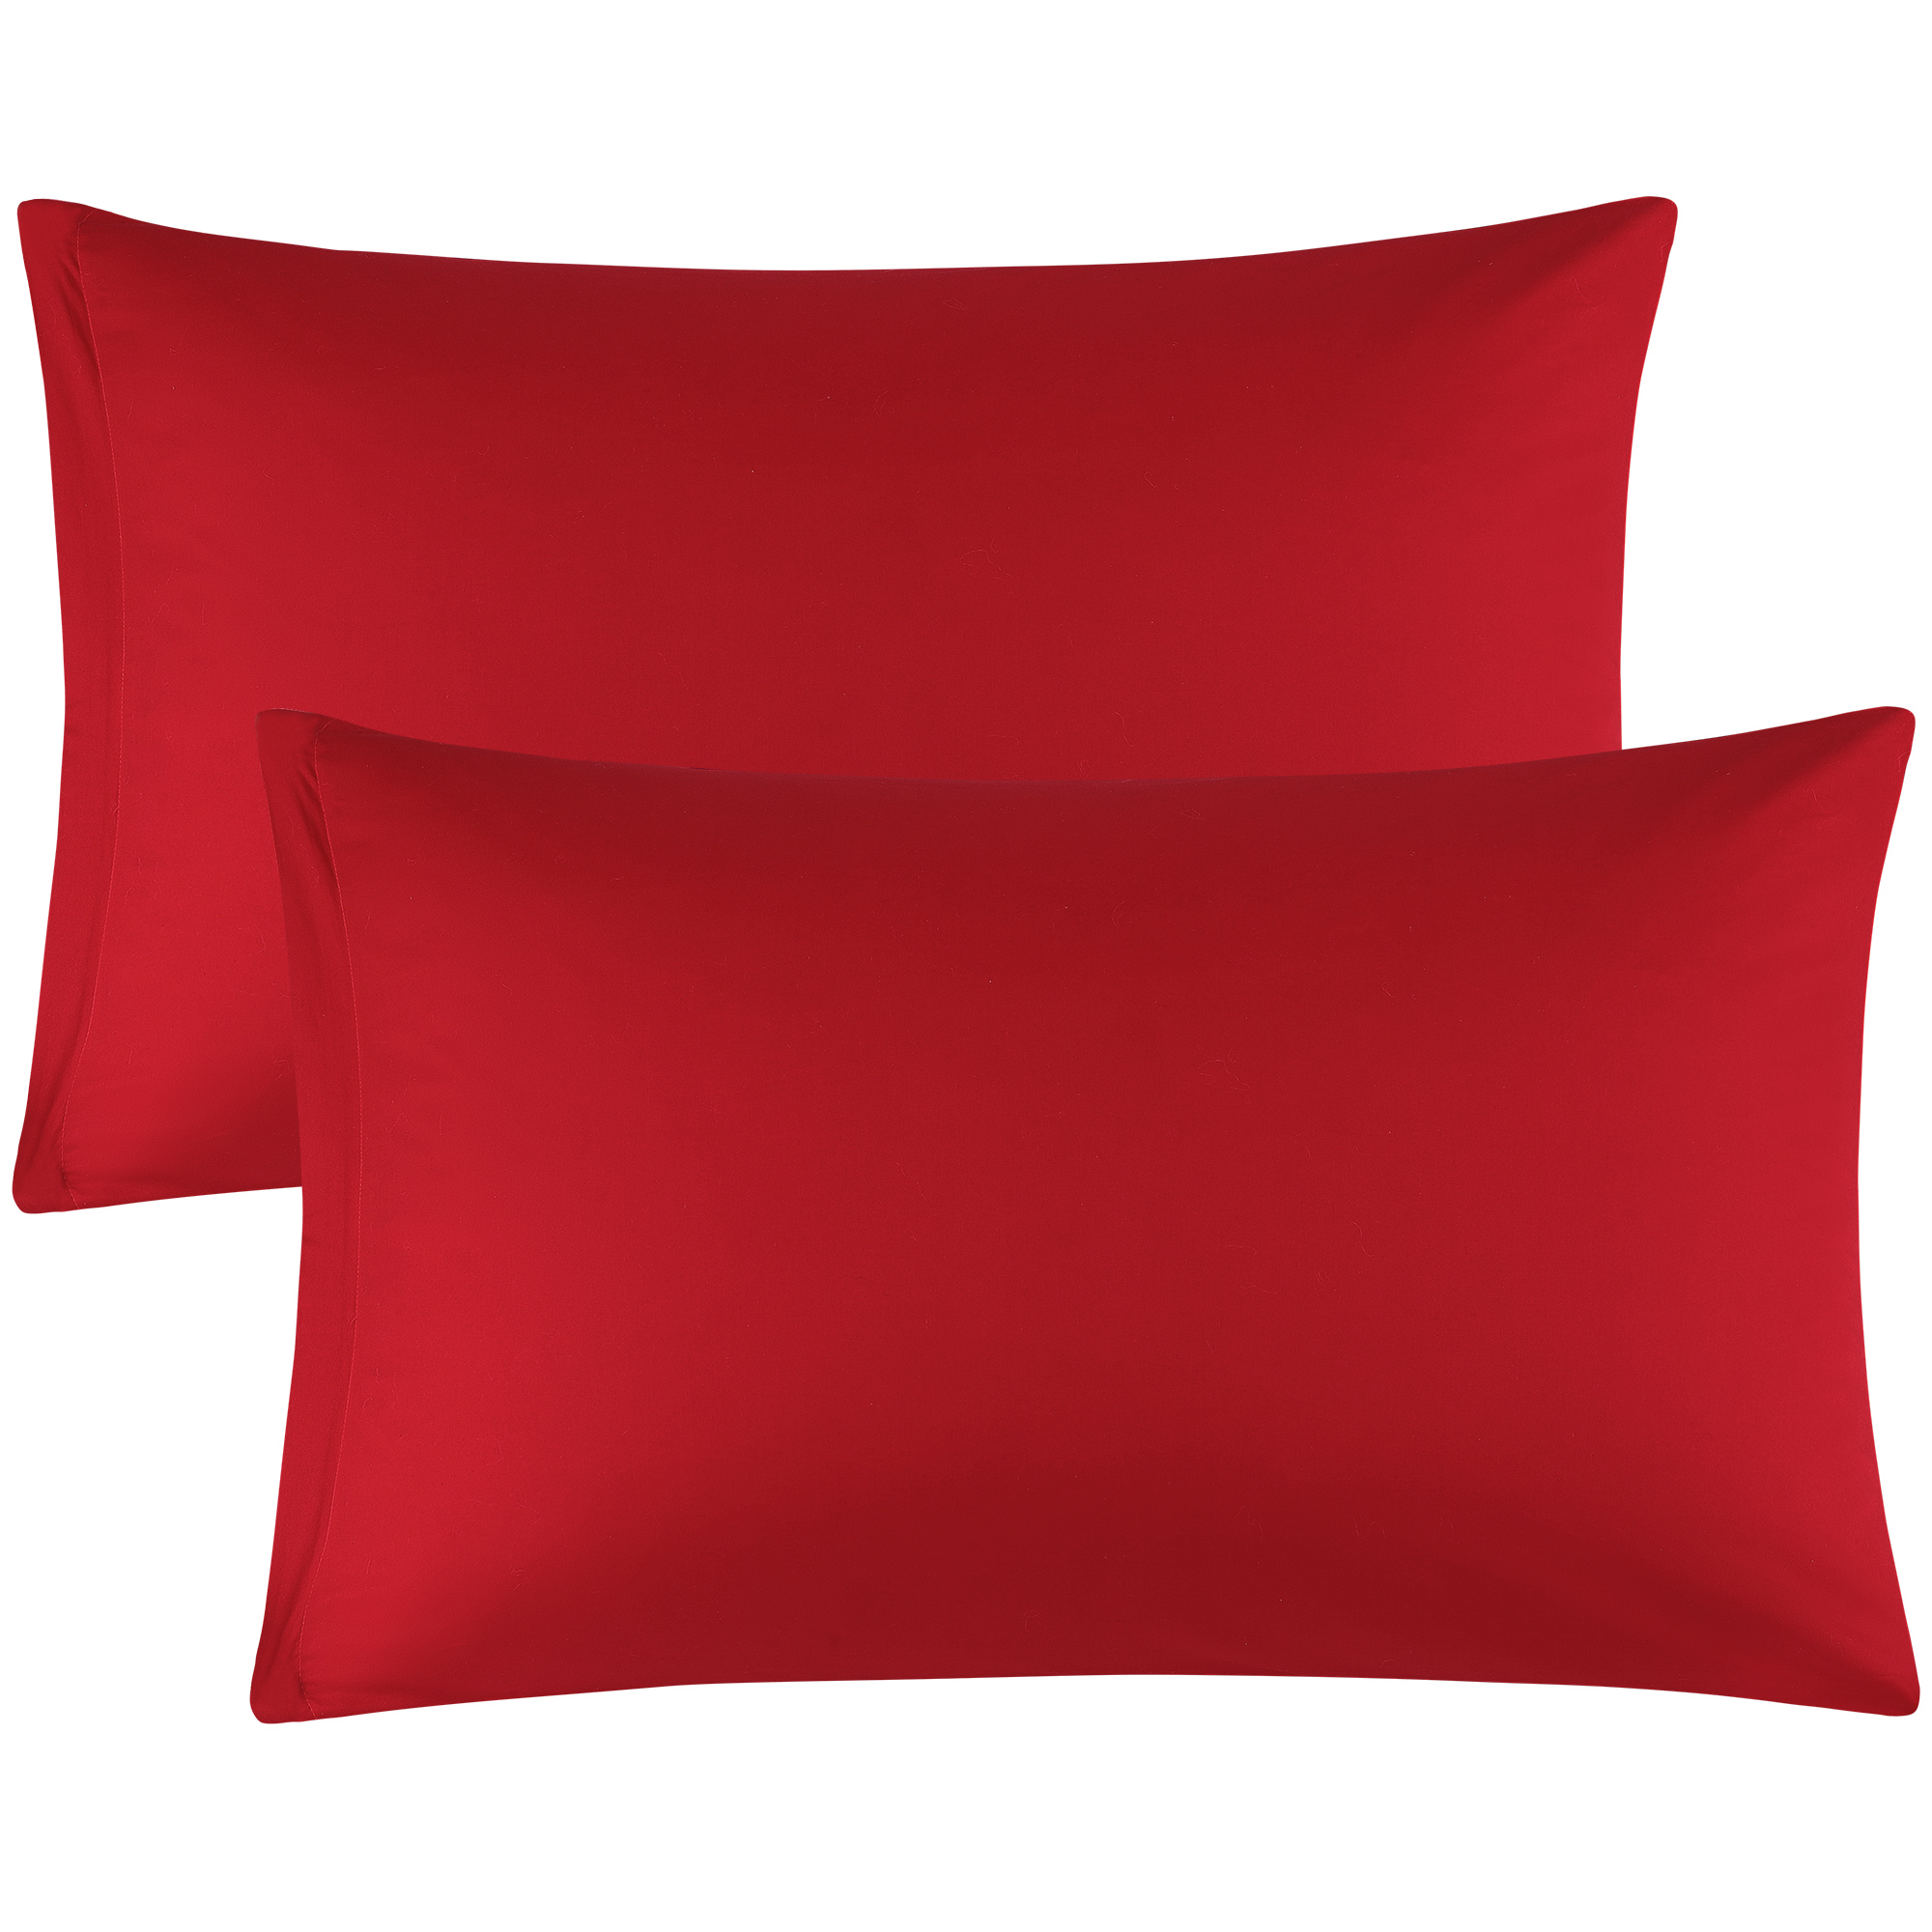 Zippered Cases Pillowcases Covers Egyptian Cotton 2-Pack (20 x 36 Inch, Red)